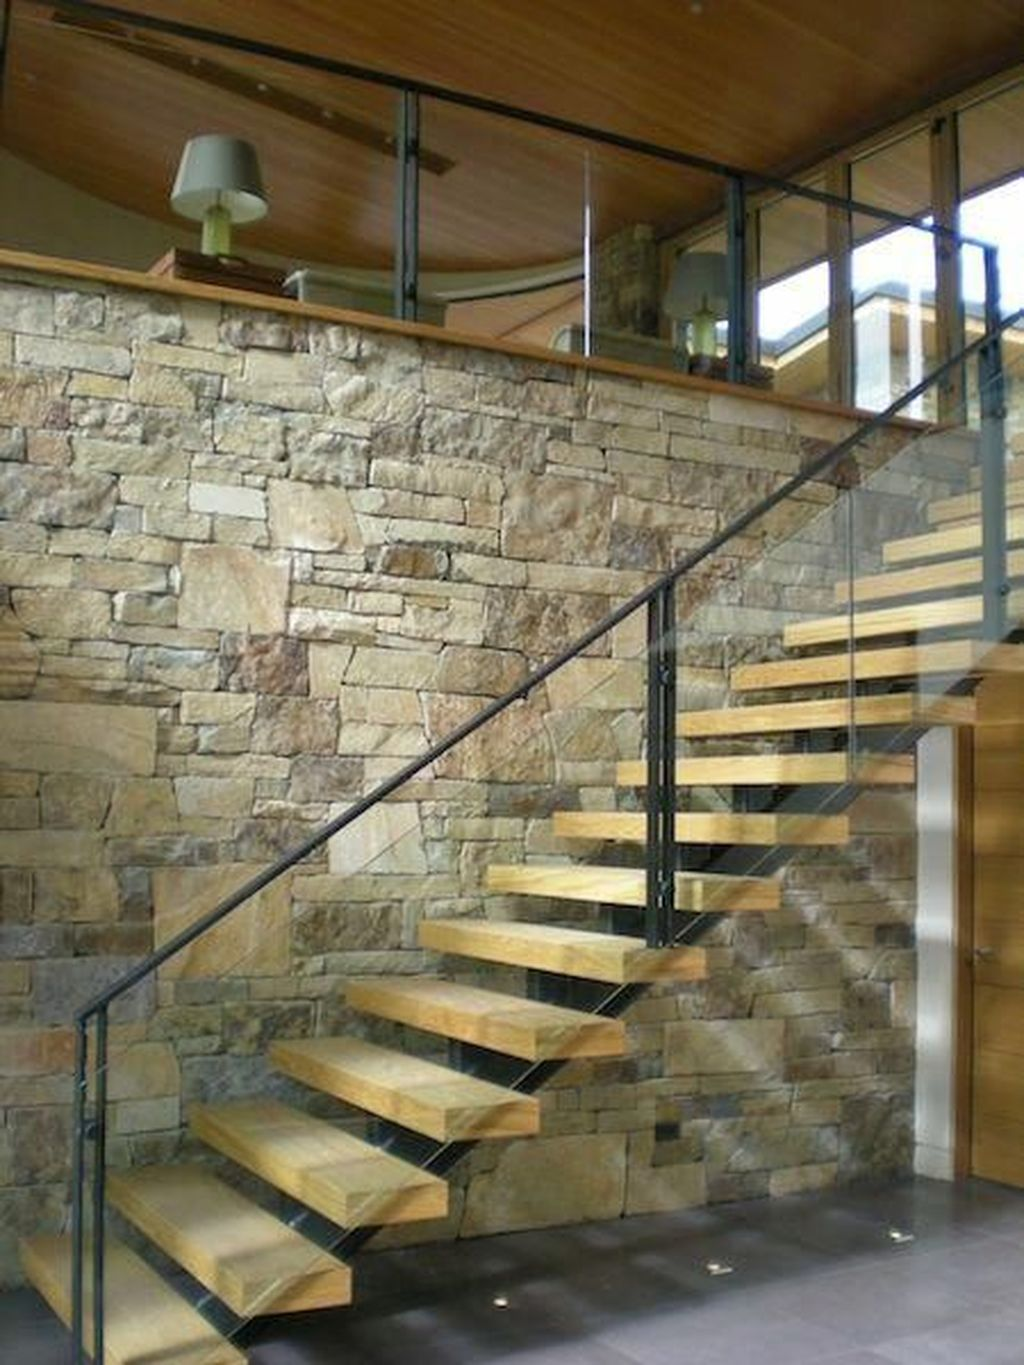 Awesome Modern Glass Railings Design Ideas For Stairs 02